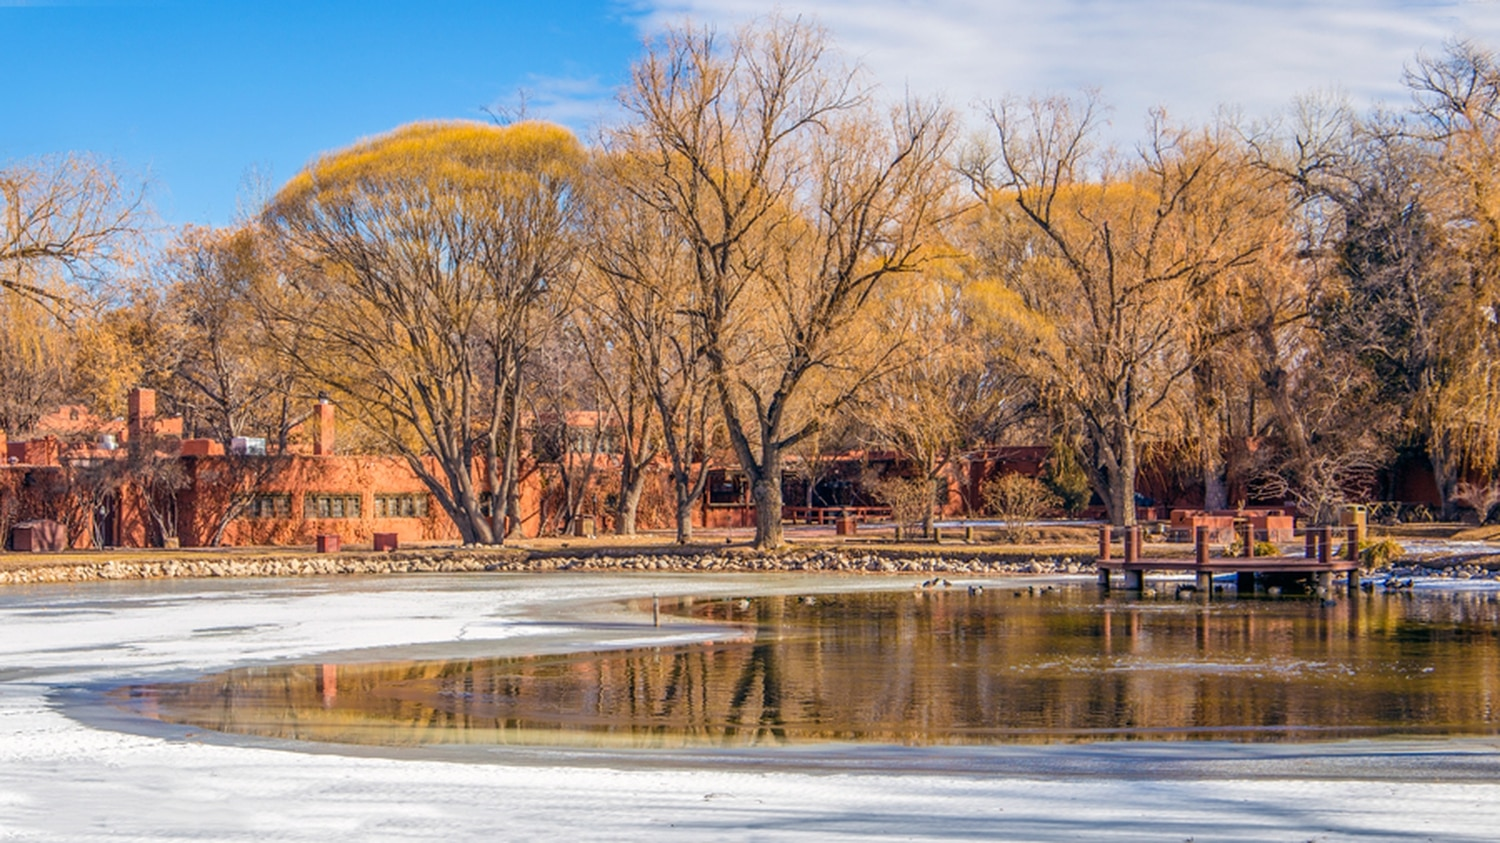 The residential units at Delancey Street Ranch look out on the peaceful setting of Swan Lake. The ranch caters weddings here during summer.